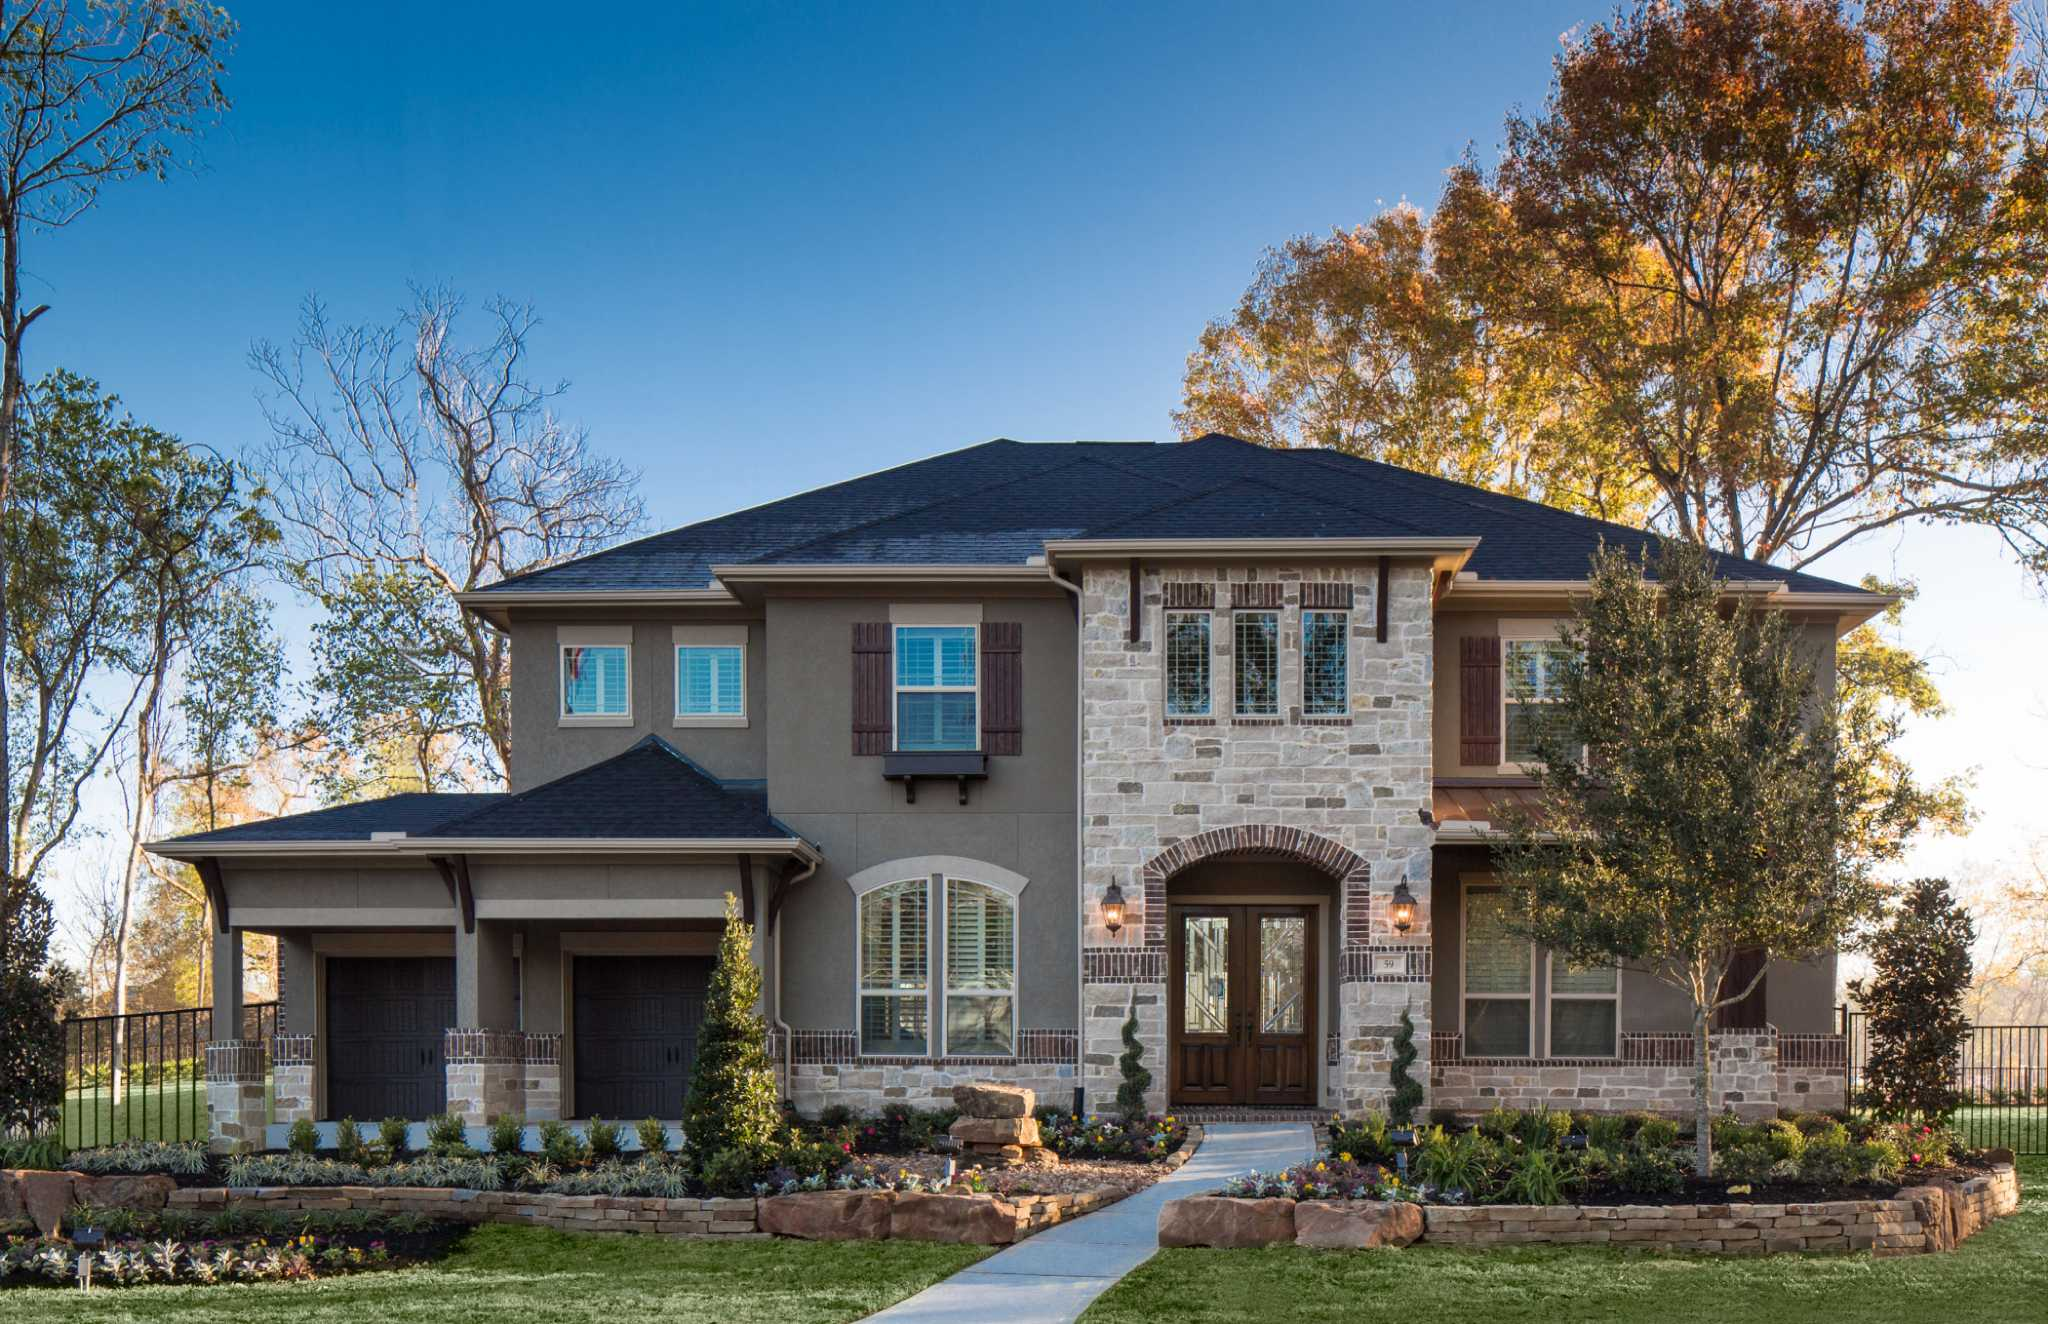 Builders Offer New Home Designs In Sienna Plantation   Houston Chronicle